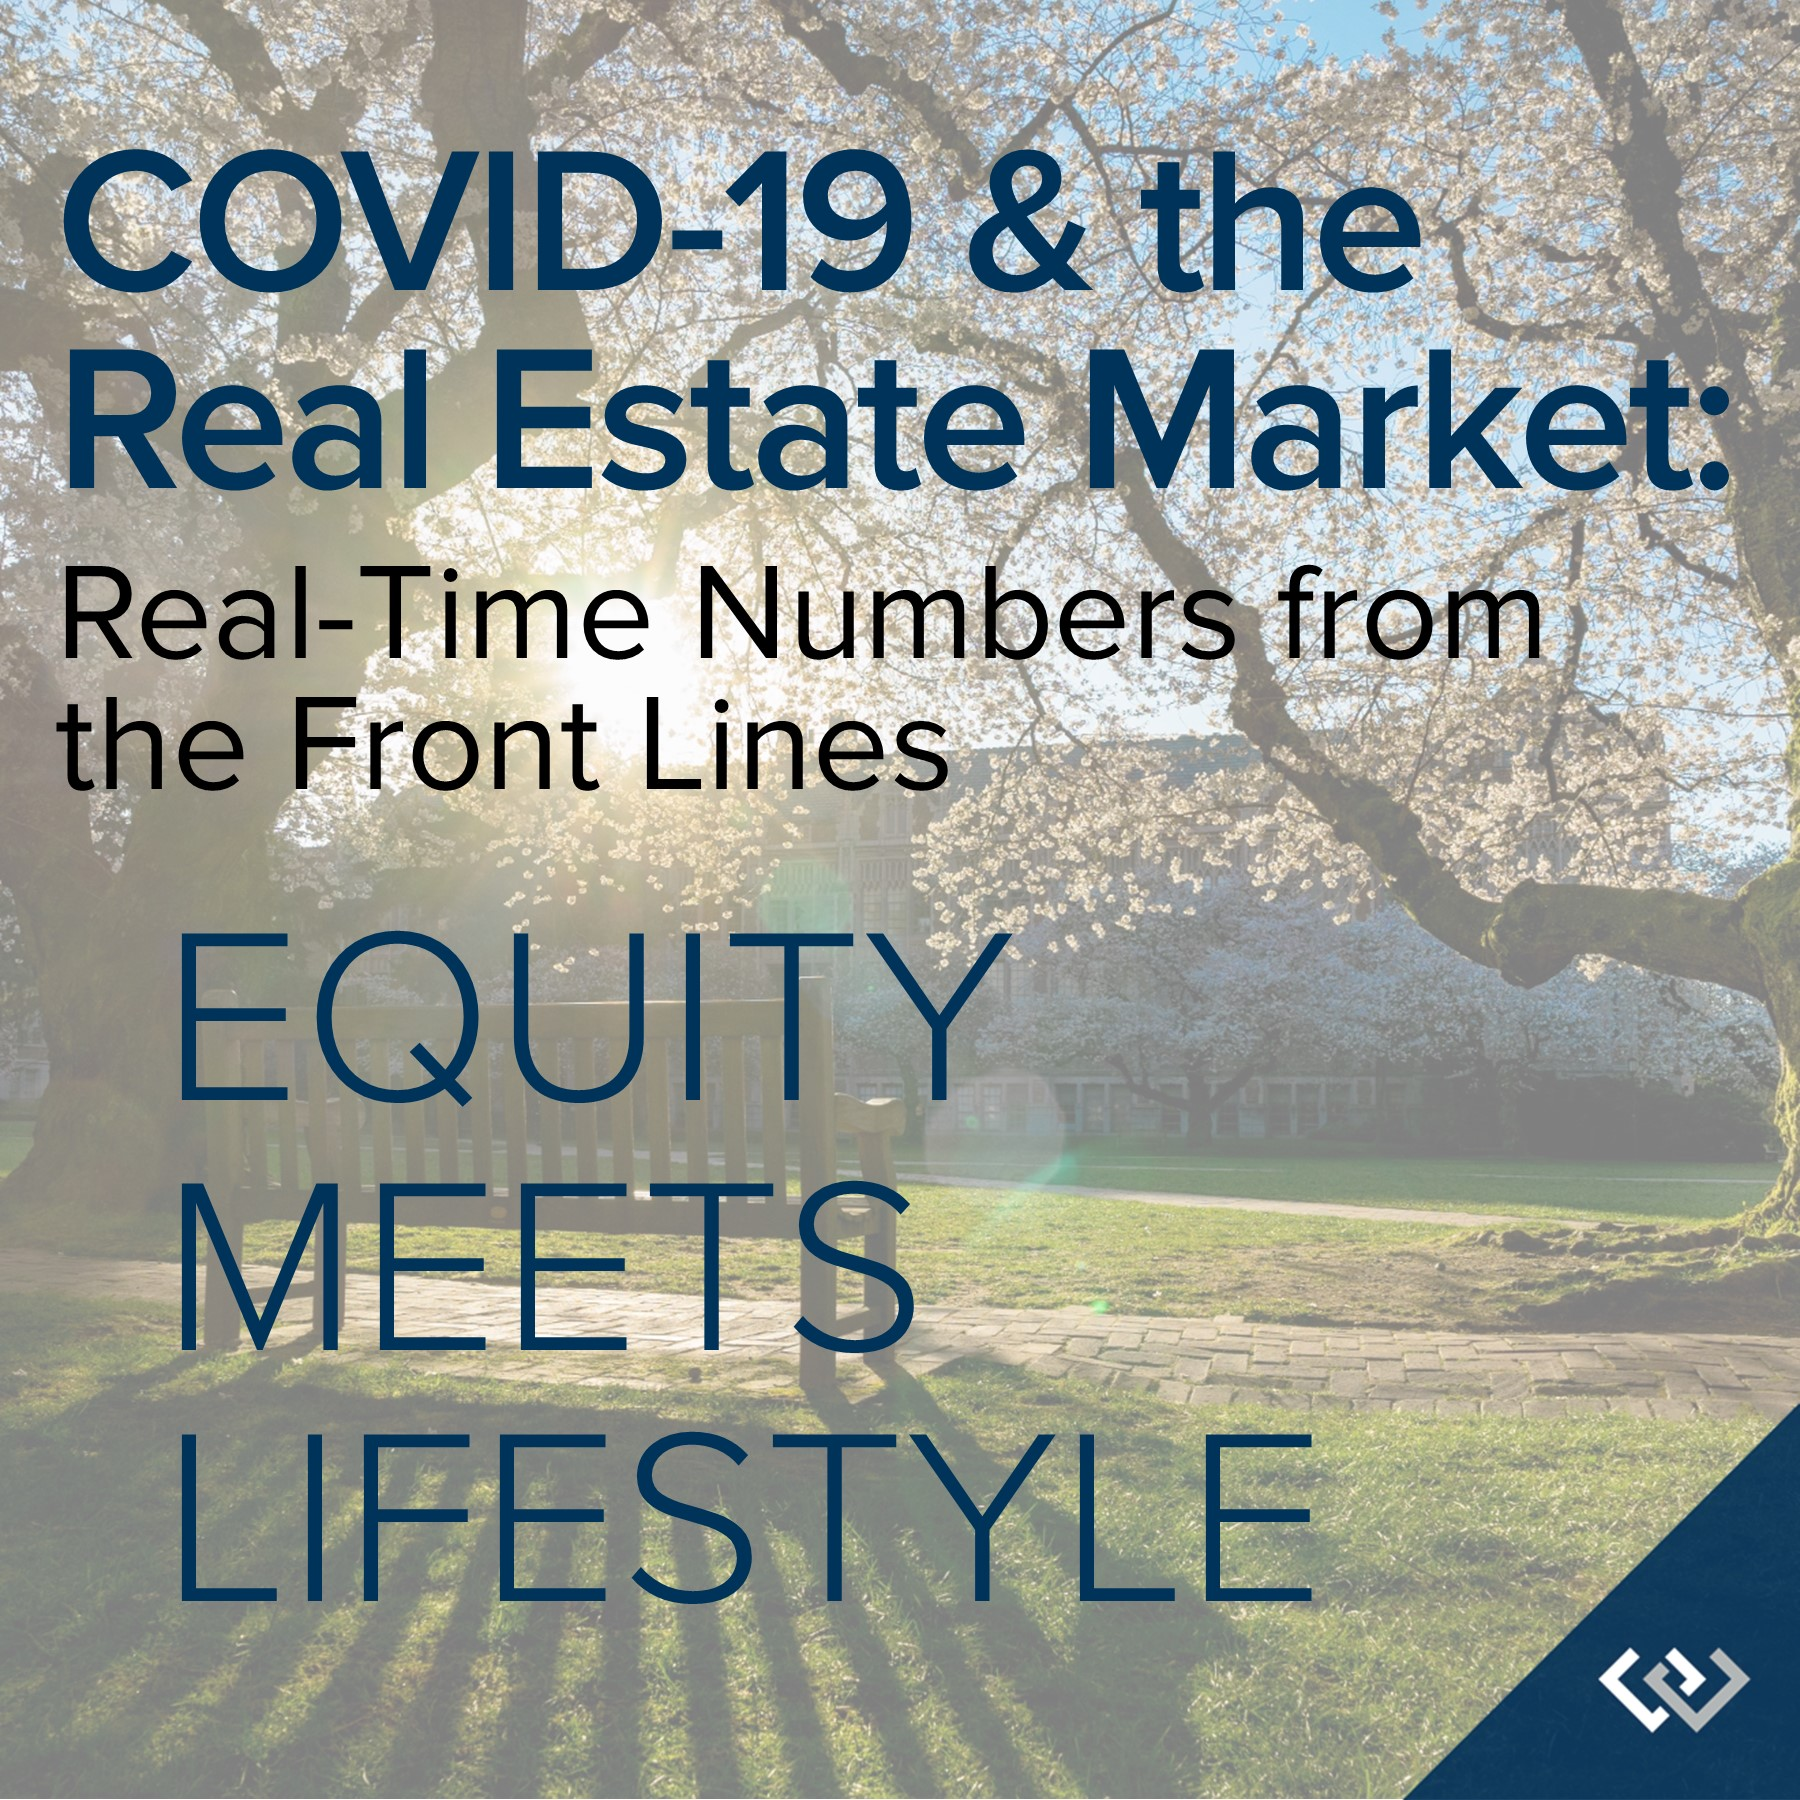 COVID-19 & the Real Estate Market - Equity meets lifestyle